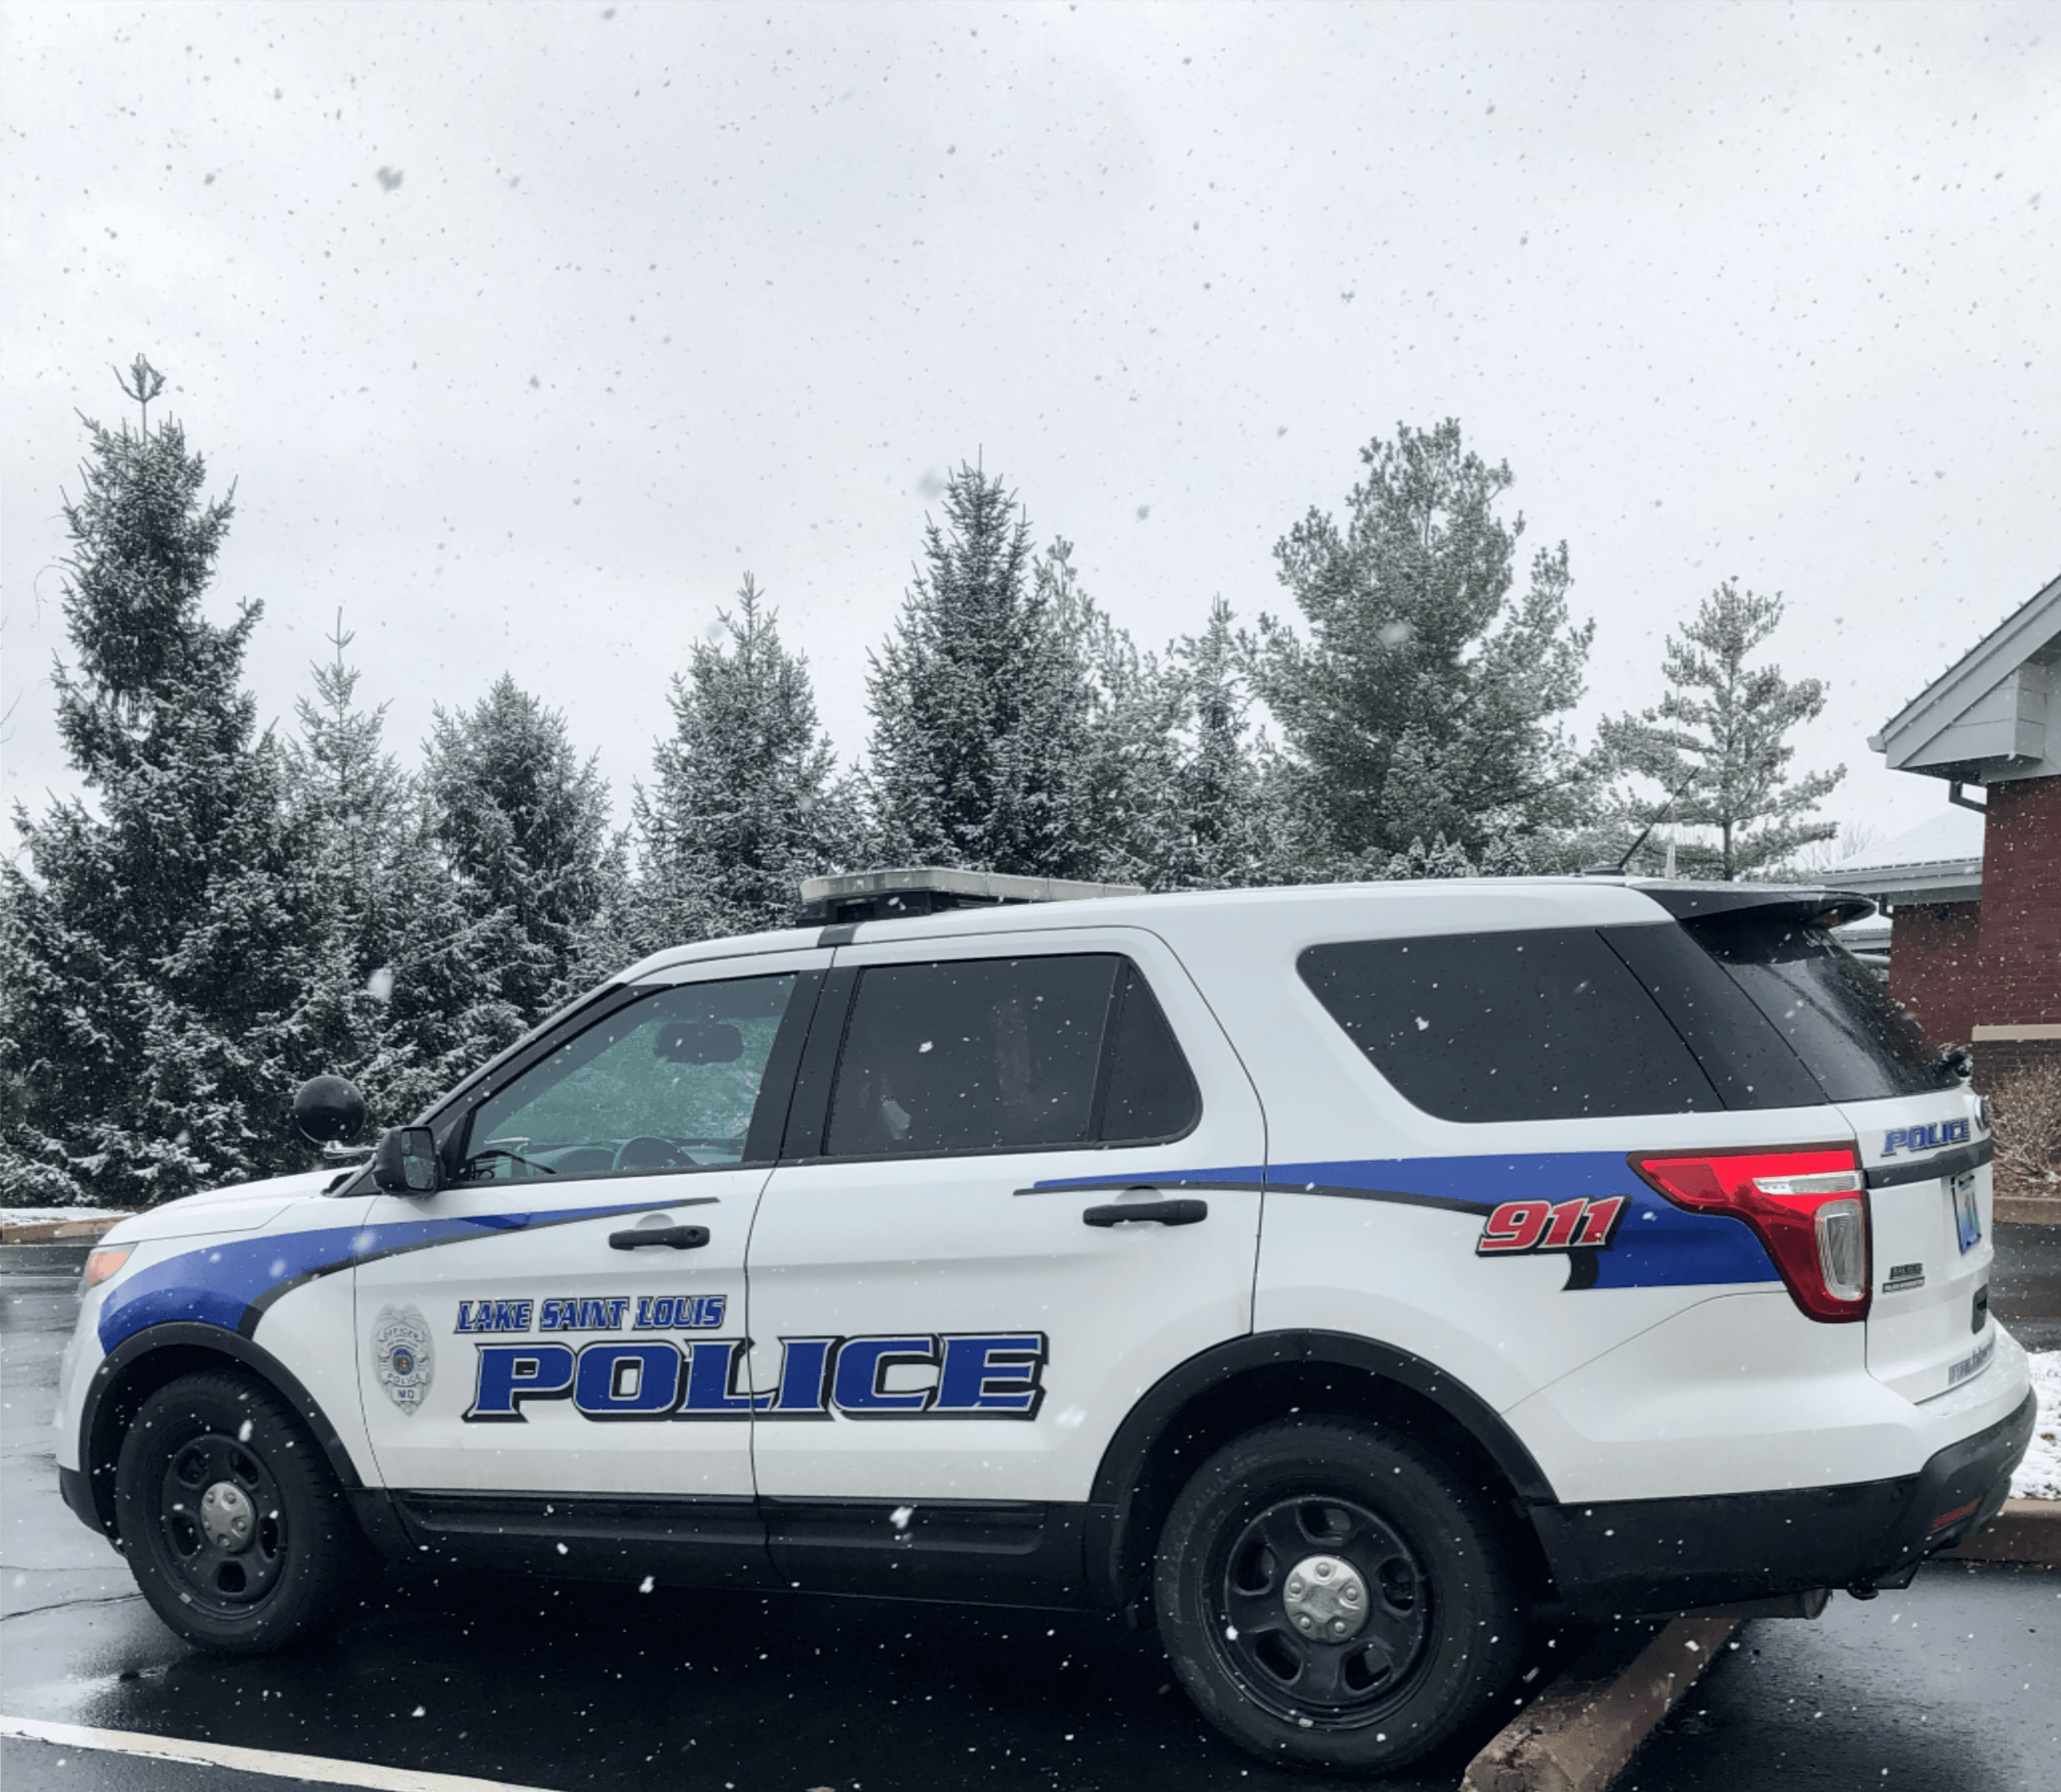 Police Car Winter